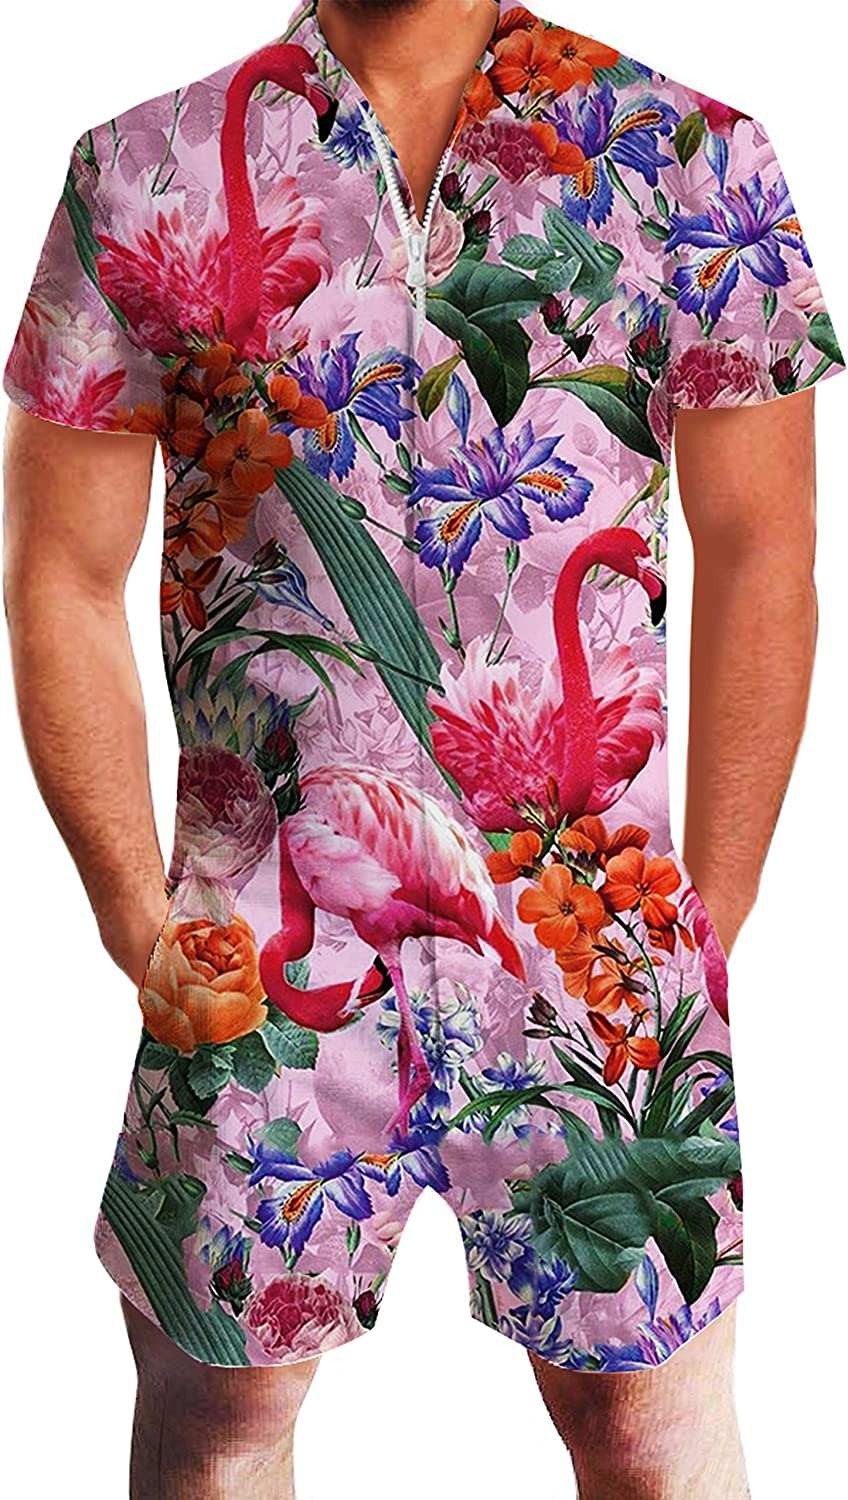 UNIFACO Mens Printed One Piece Short Sleeve Zipper Rompers Summer Short Jumpsuit Overall Pants w/Pocket